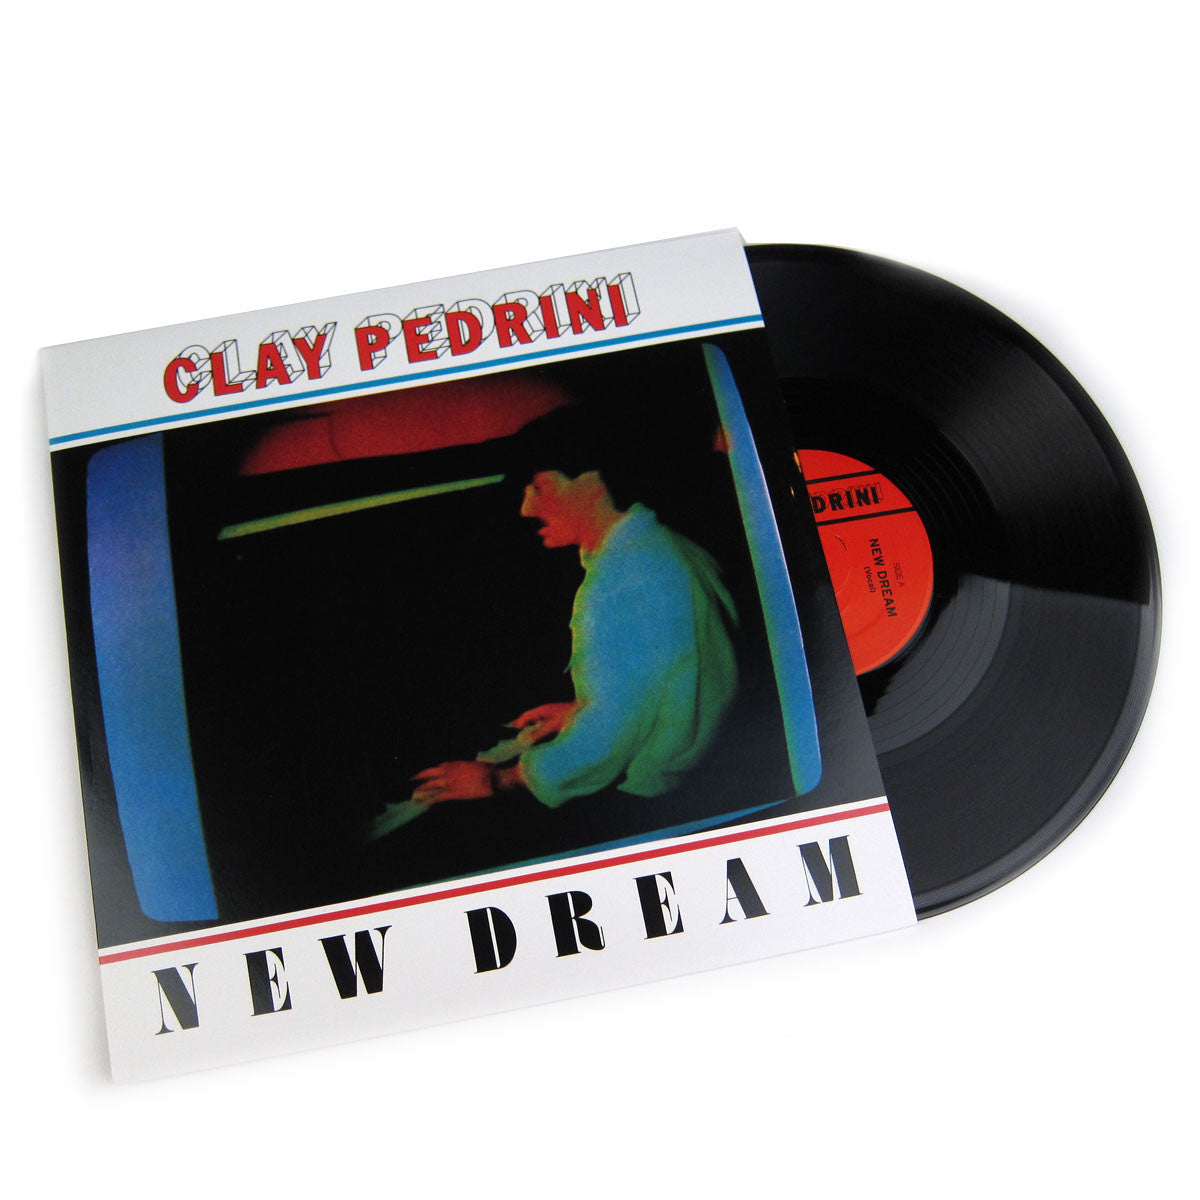 Clay Pedrini: New Dream Vinyl 12""